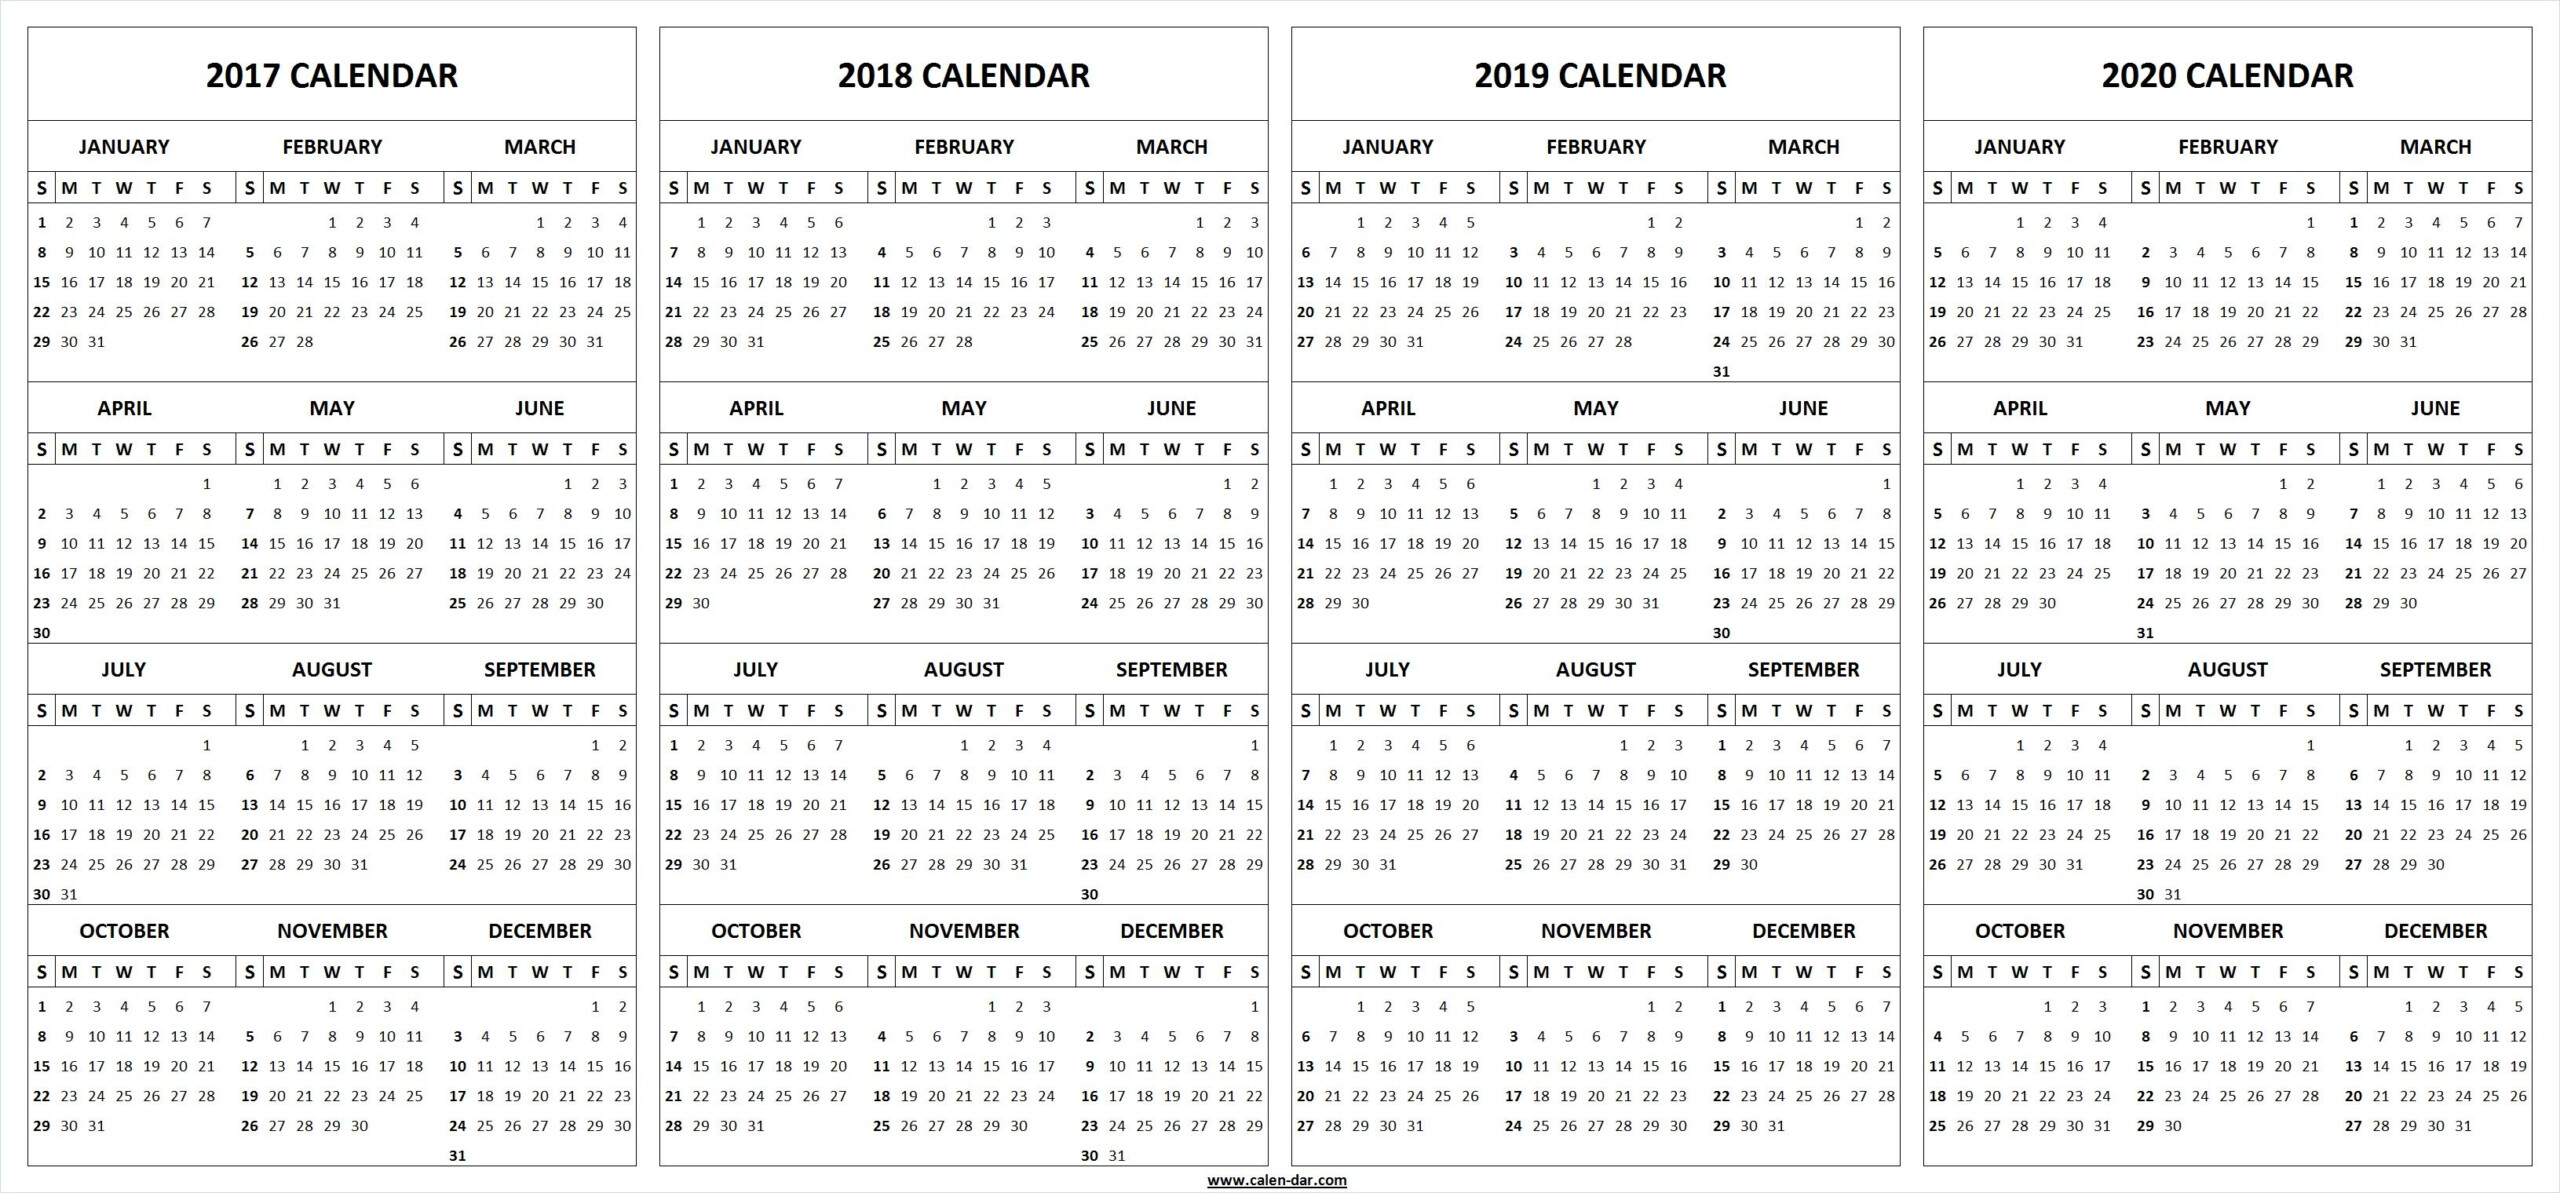 4 Four Year 2017 2018 2019 2020 Calendar Printable Template